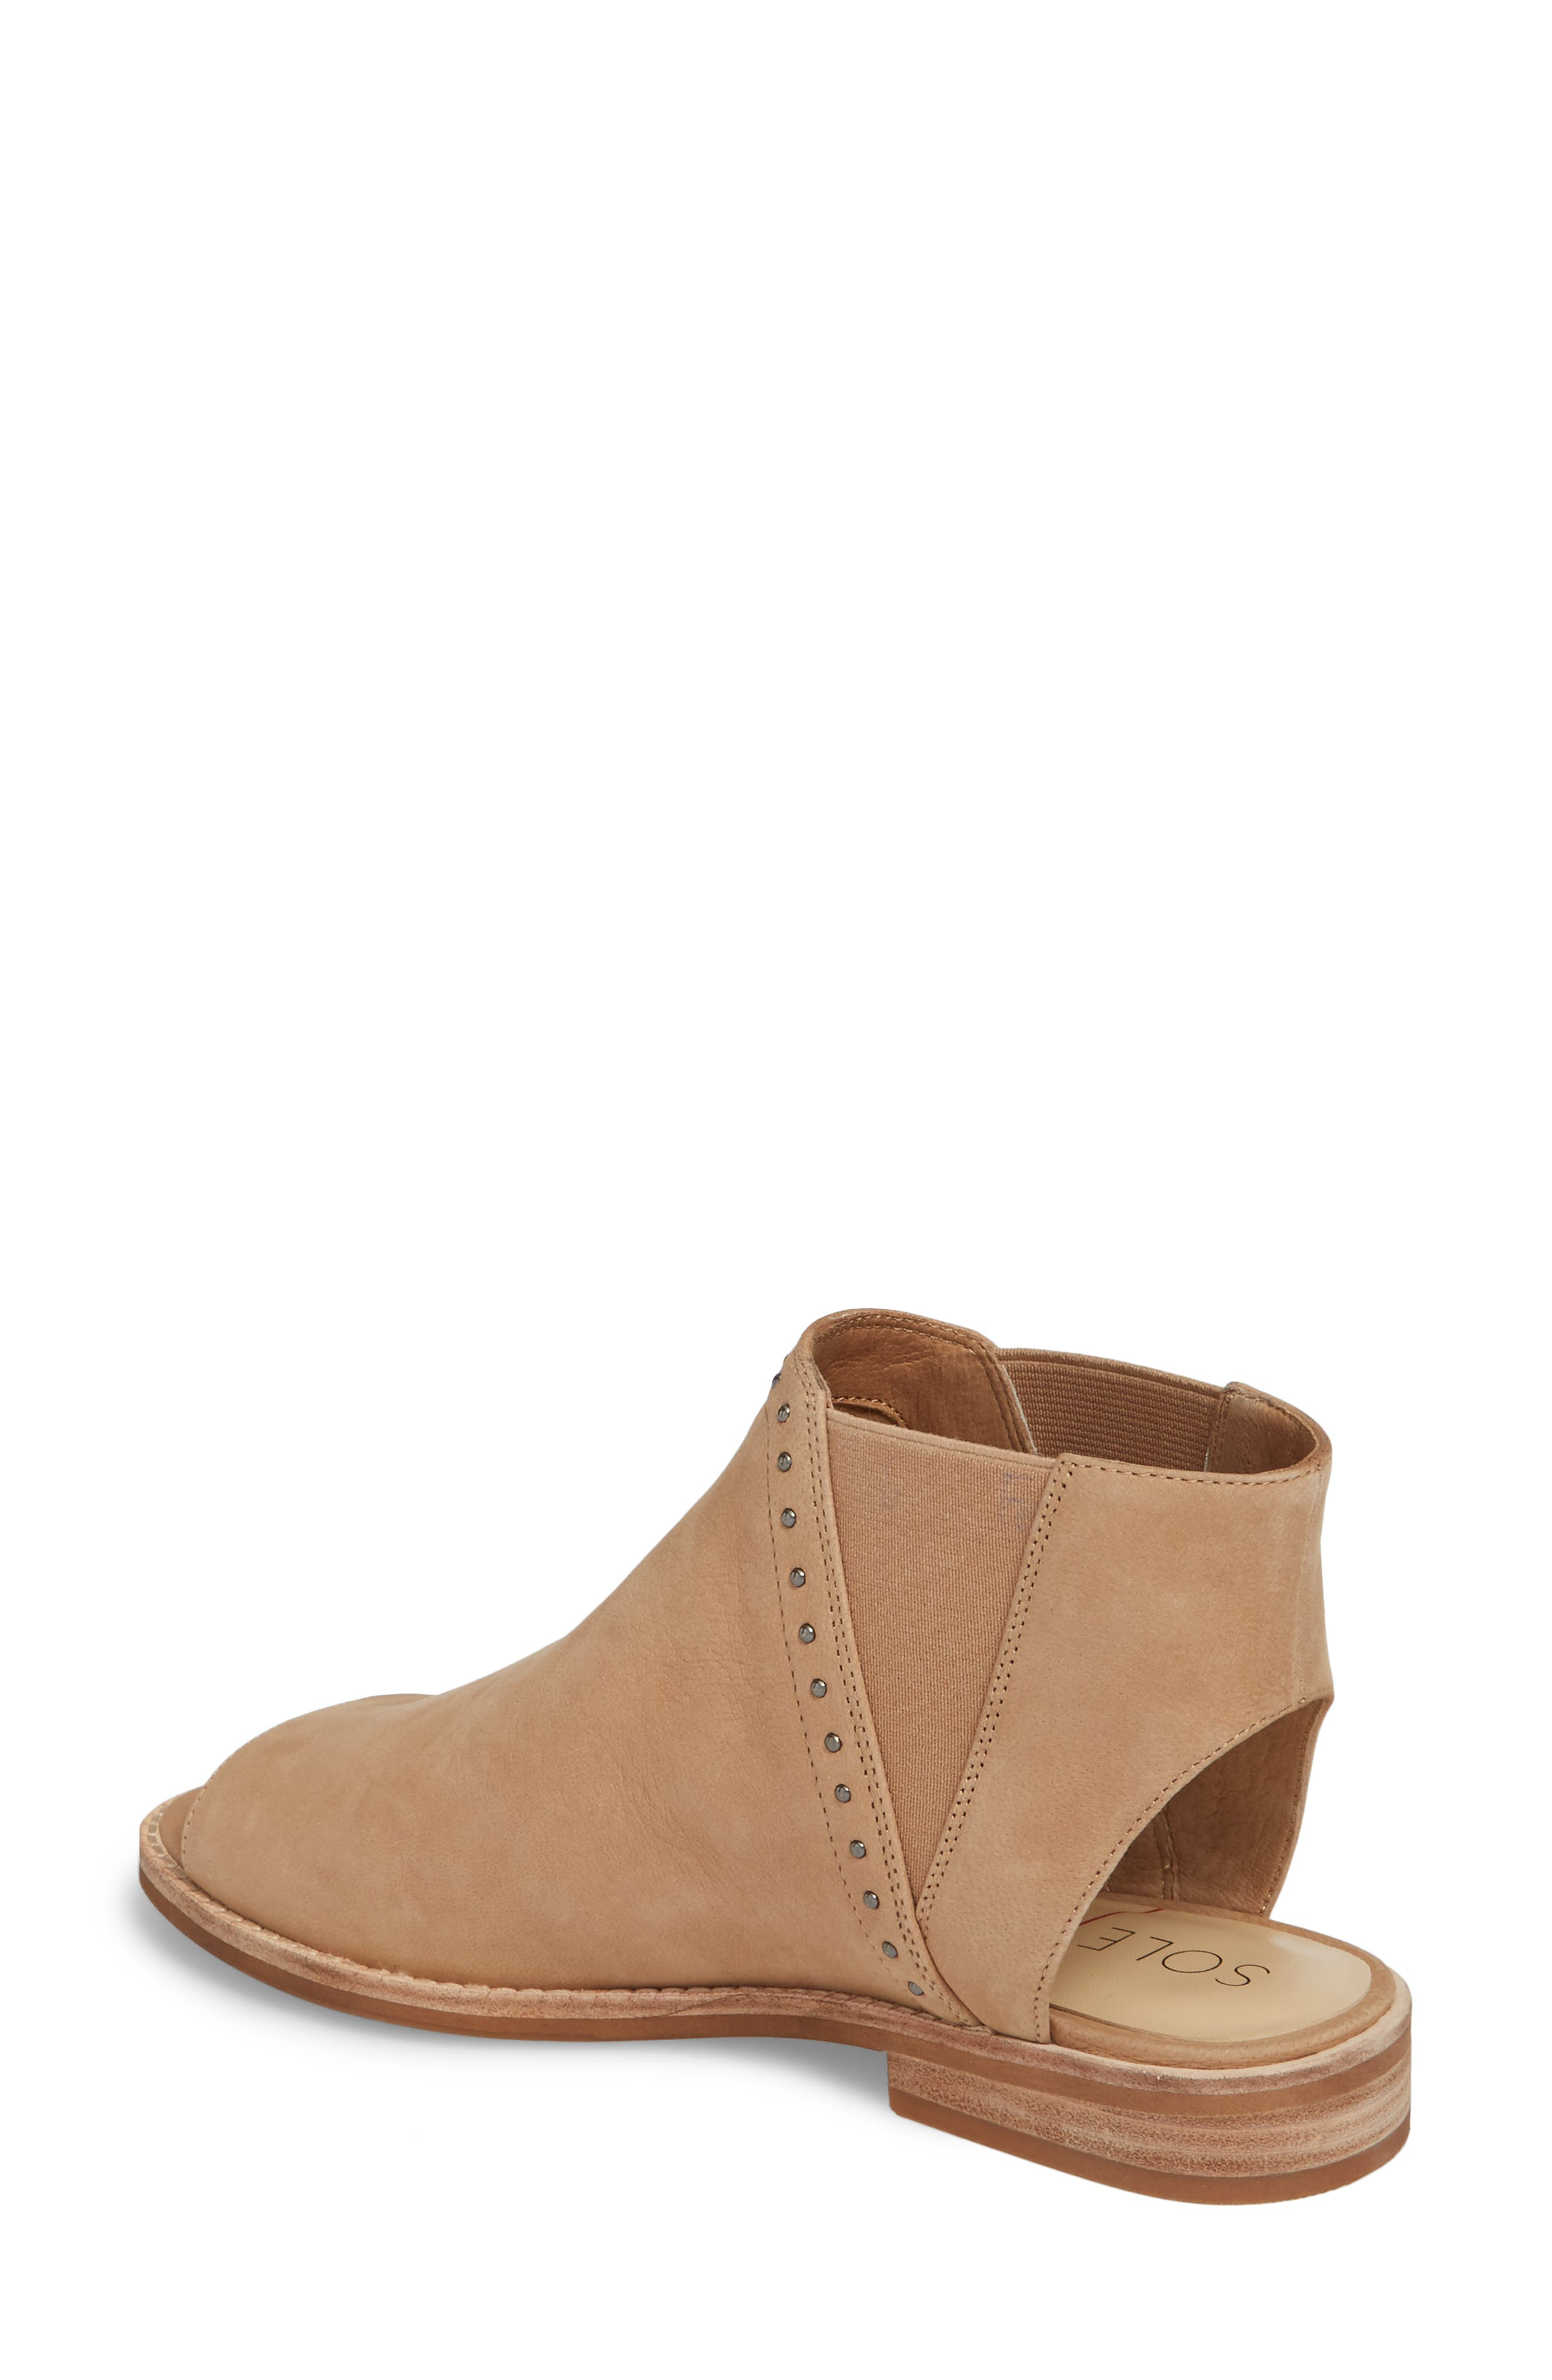 Birty Bootie,                             Alternate thumbnail 2, color,                             Dusty Taupe